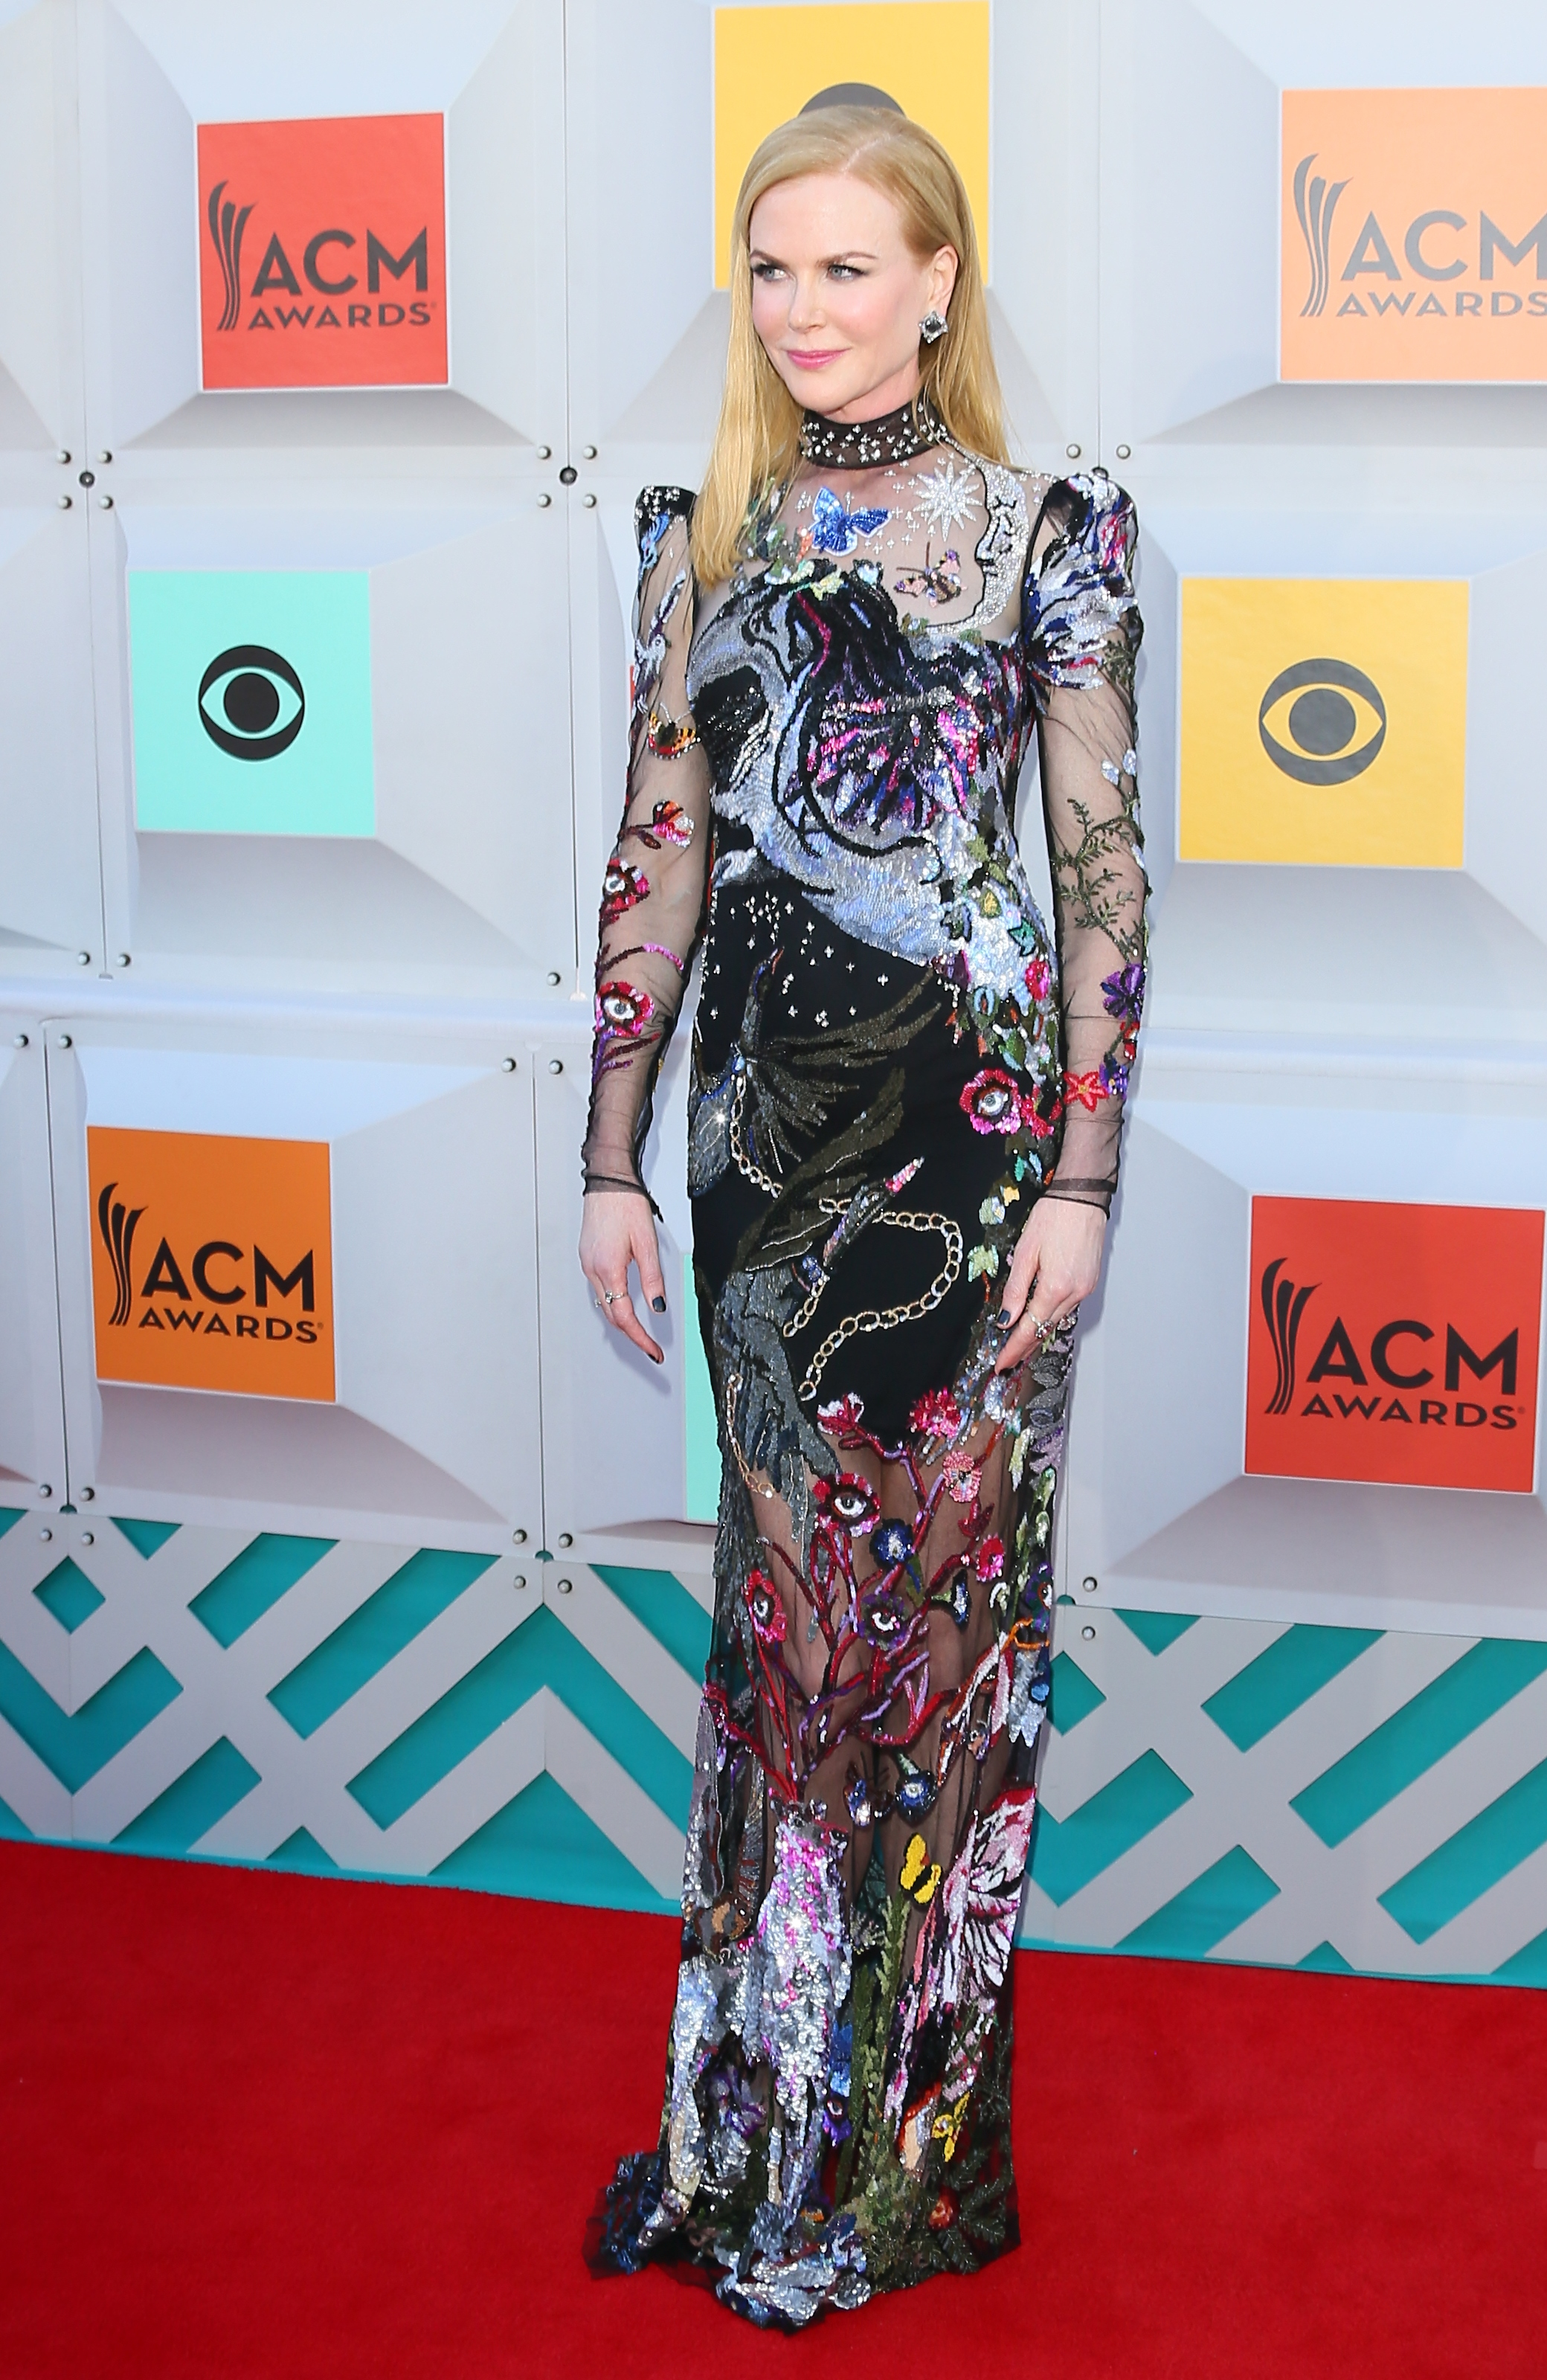 LAS VEGAS, NEVADA - APRIL 03: Nicole Kidman attends the 51st Academy of Country Music Awards at MGM Grand Garden Arena on April 3, 2016 in Las Vegas, Nevada. (Photo by JB Lacroix/WireImage)